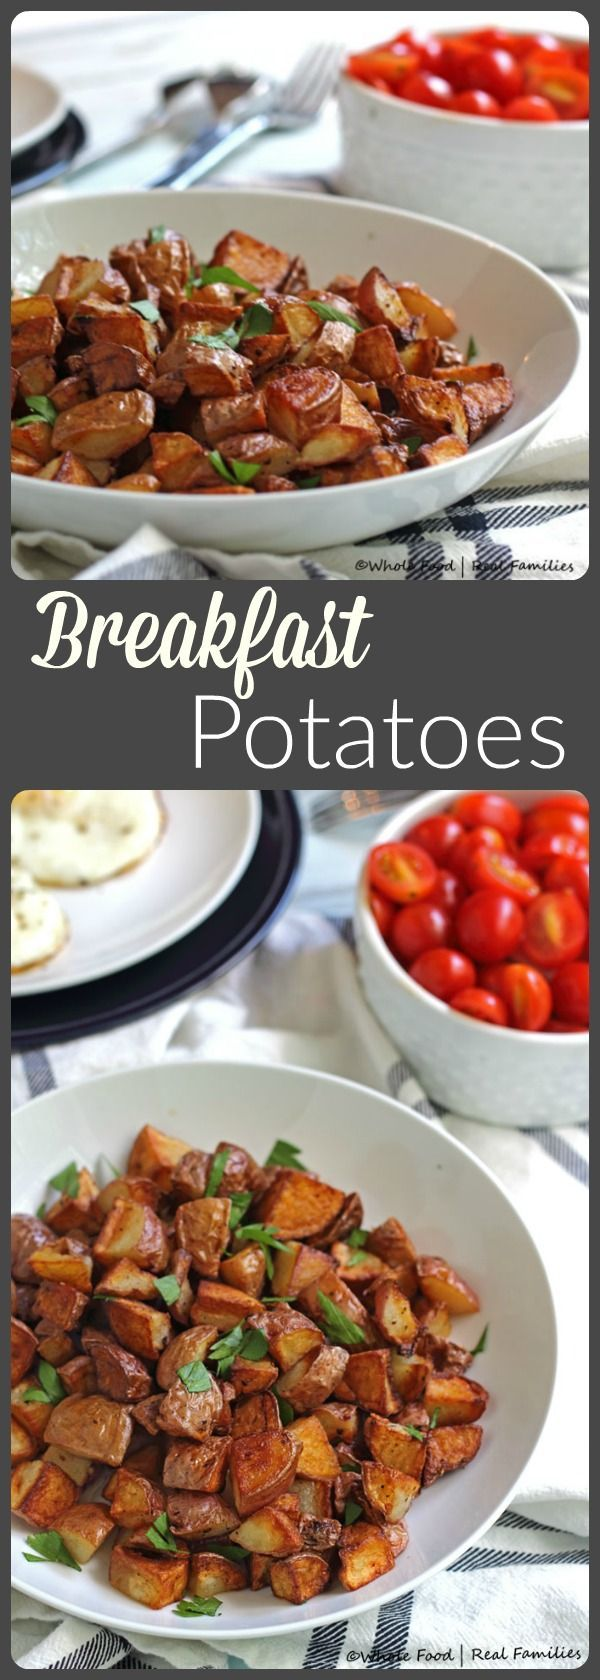 Crispy Breakfast Potatoes. There is trick to getting them soft on the inside and crisp on the outside! @wholefoodrealfa